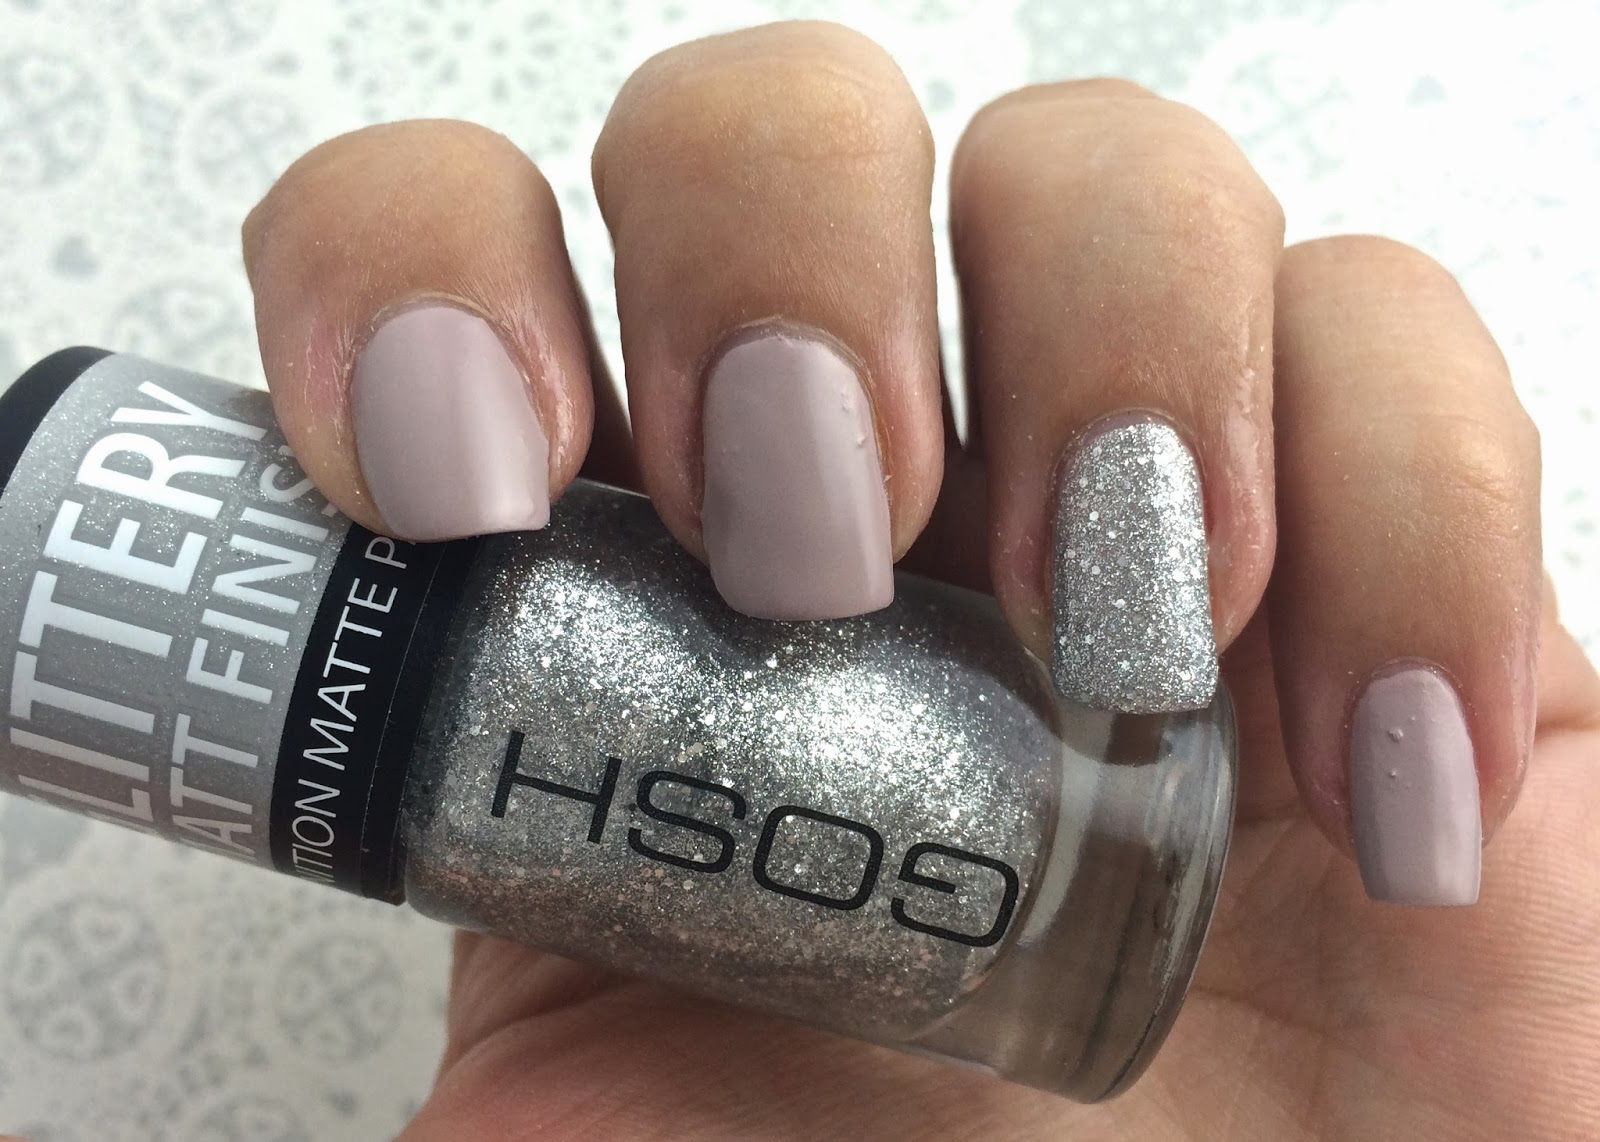 Easy party season nail art look 1 matte glitter accents easy party season nail art look 1 matte glitter accents prinsesfo Image collections